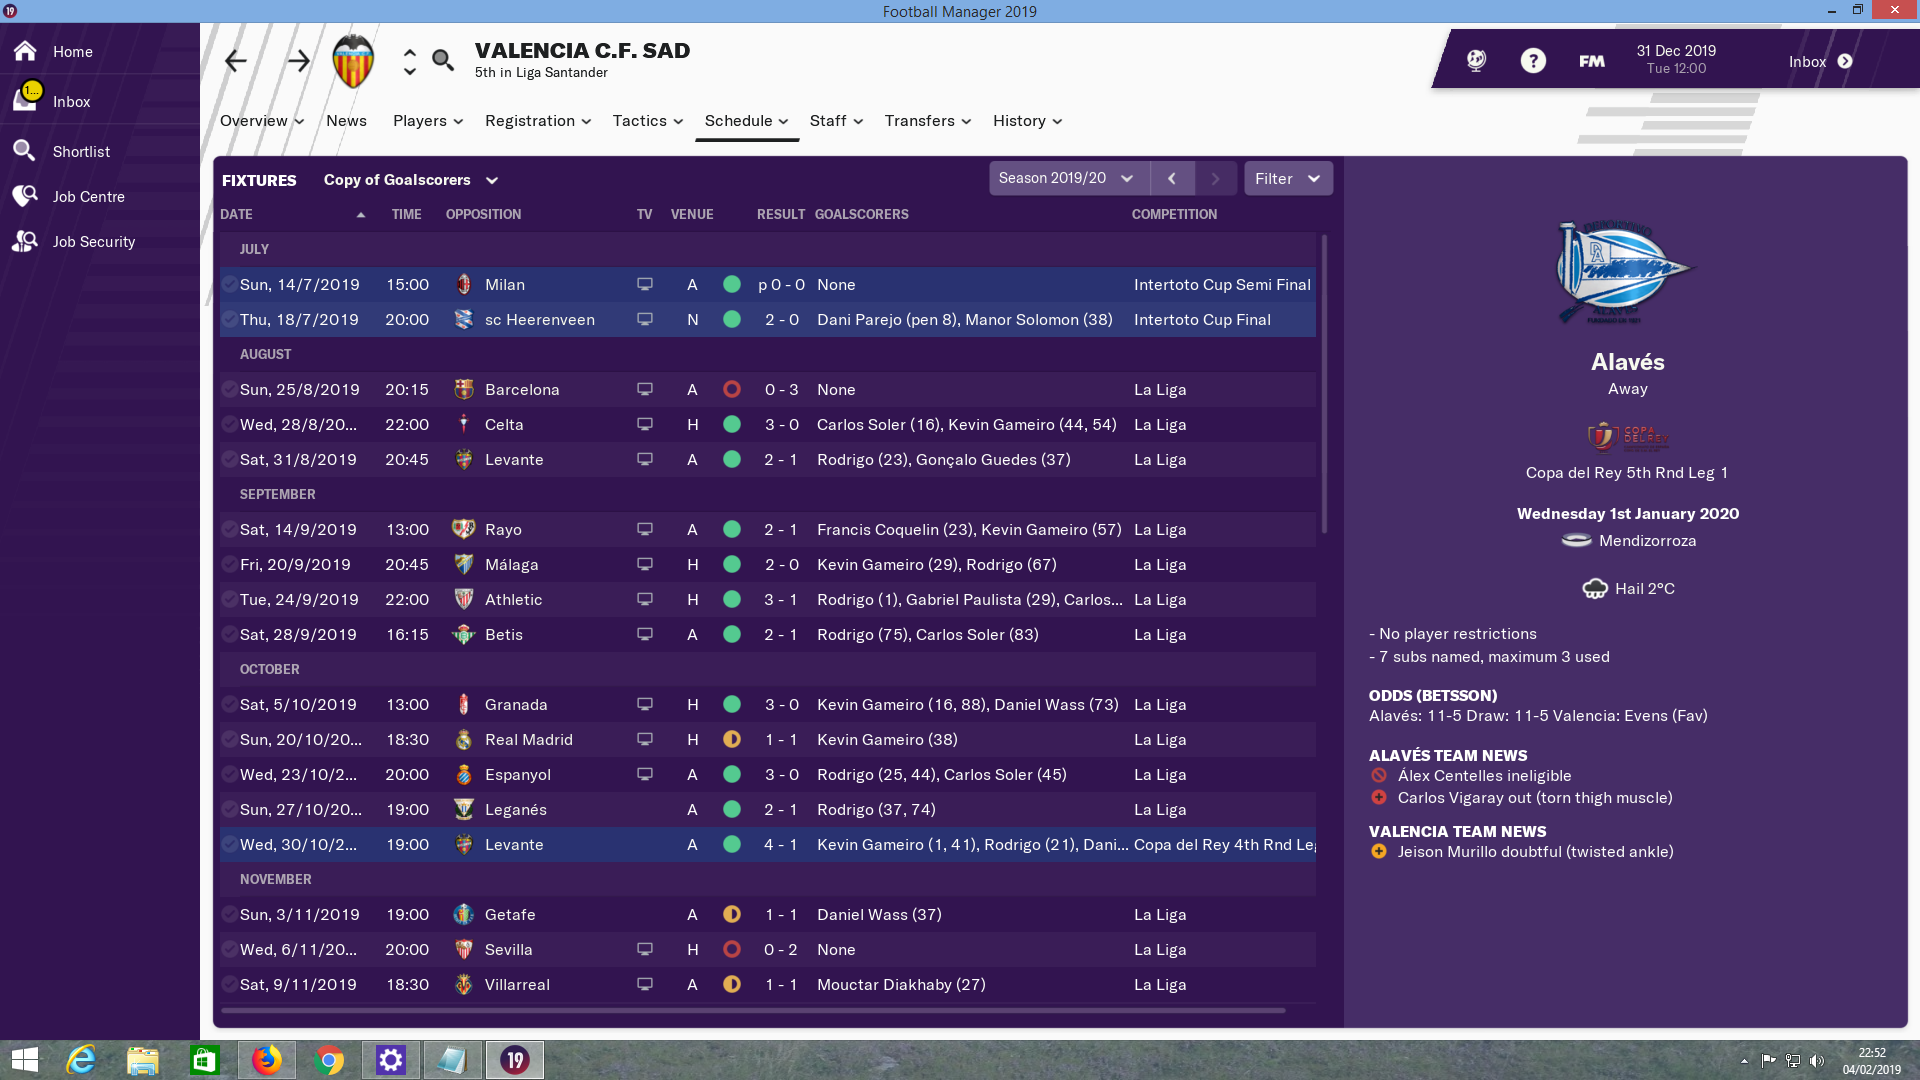 europa conference league football manager 2020 football manager general discussion sports interactive community europa conference league football